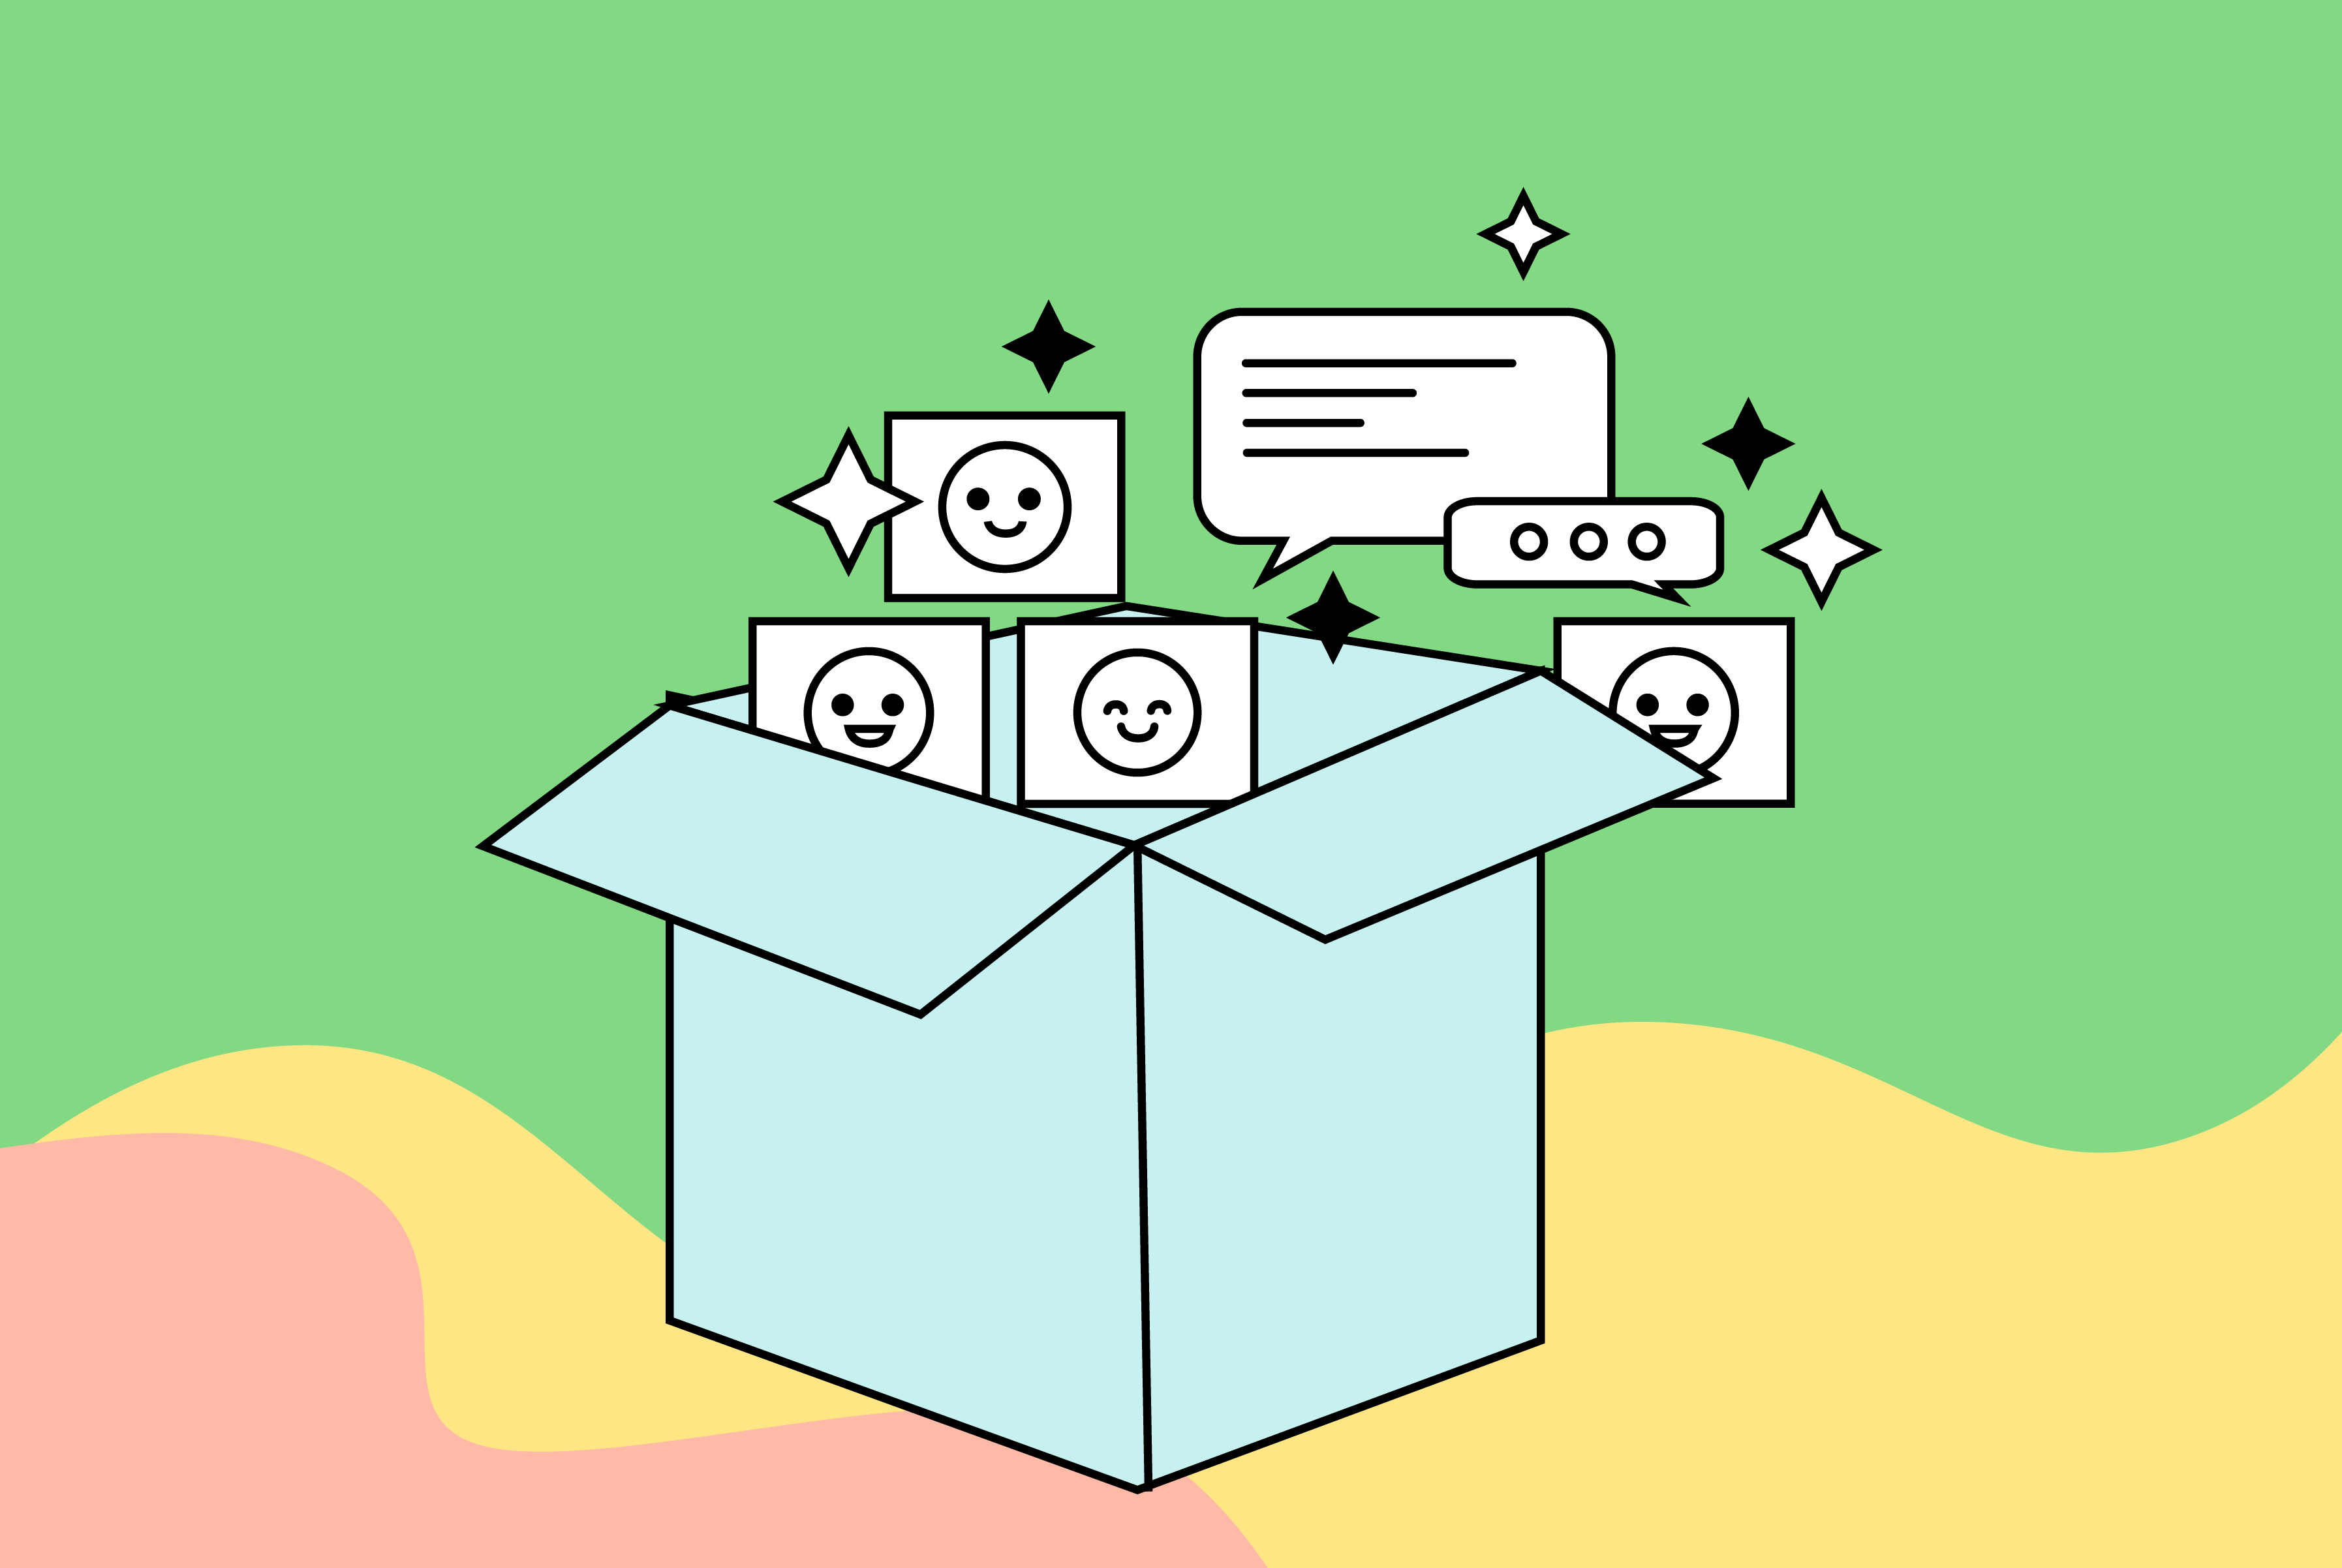 Onboarding is the first impression a remote teammate gets for your team, culture, and processes. Set new employees up for success with these tips.